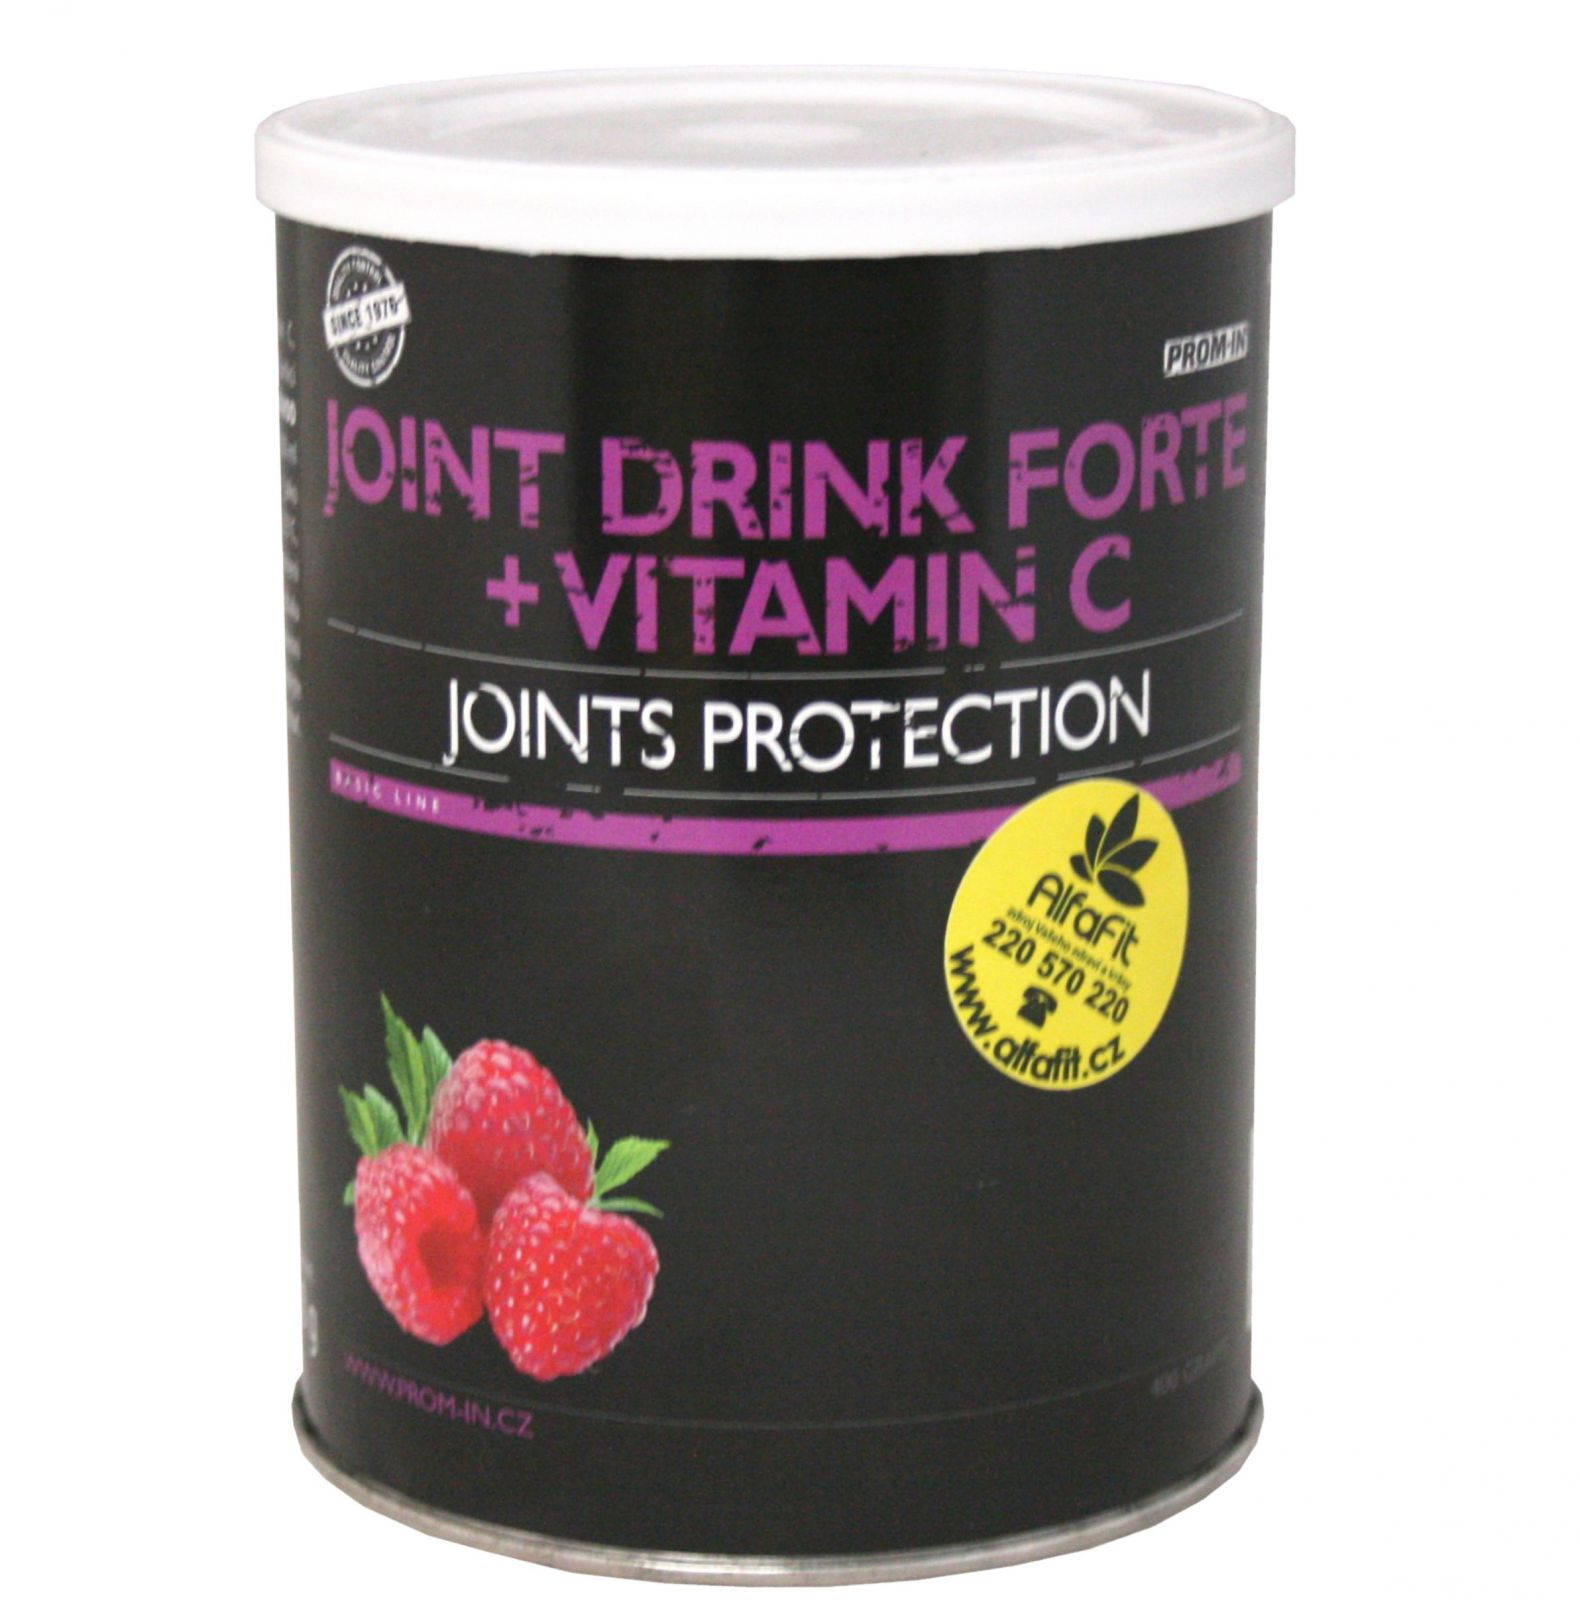 PROM-IN Joint Drink Forte + Vitamin C - příchuť malina